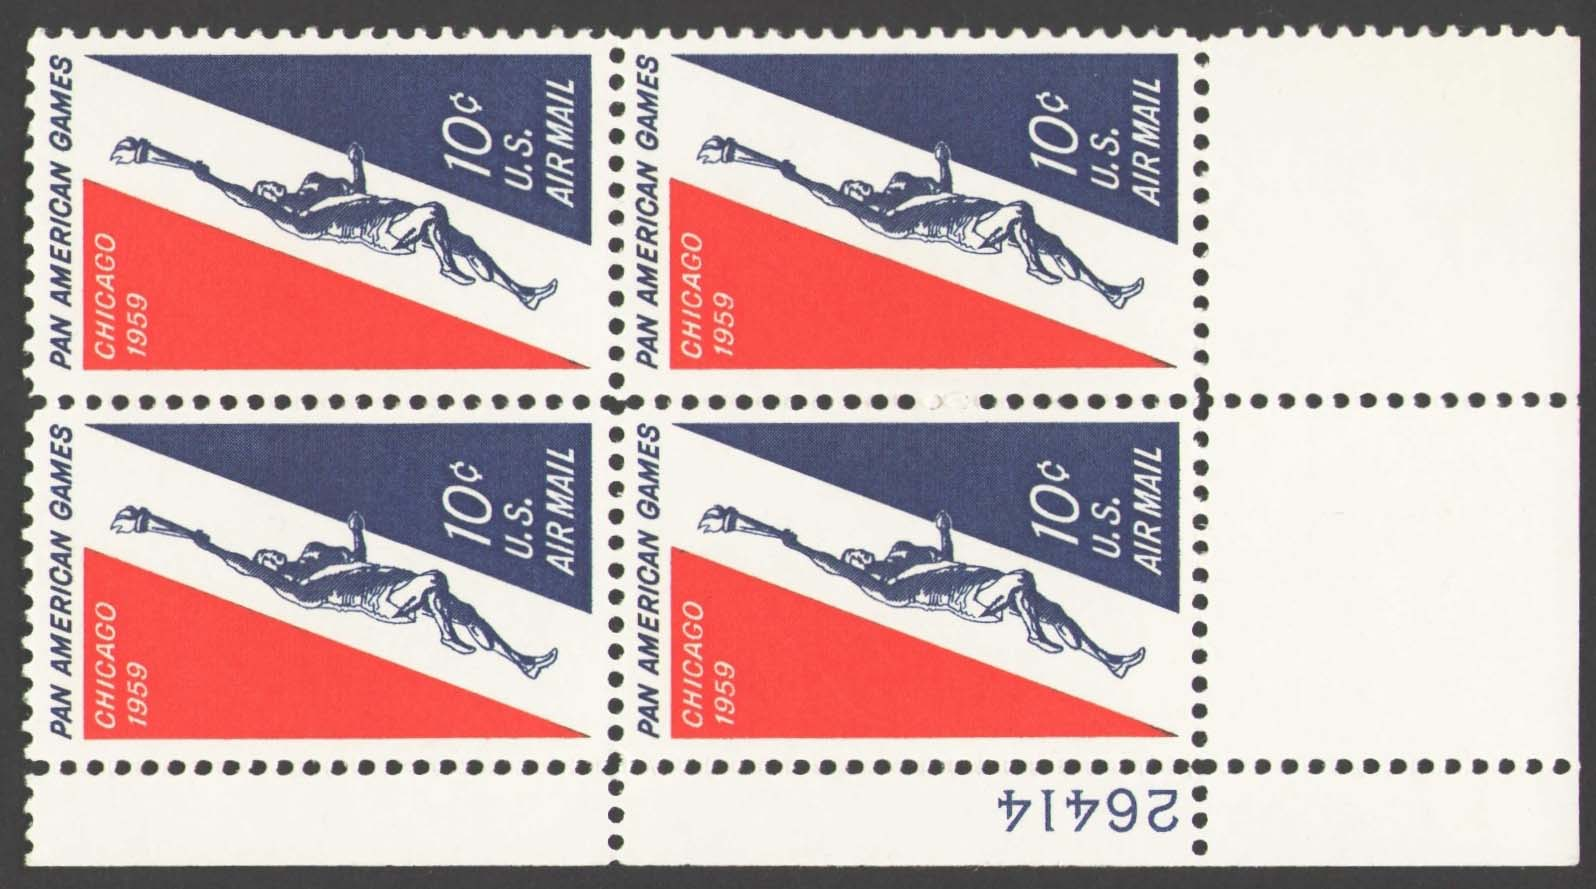 "Scott C-056 Plate Block (10 cents) <p> <a href=""/images/USA-Scott-C-056-PB.jpg""><font color=green><b>View the image</a></b></font>"